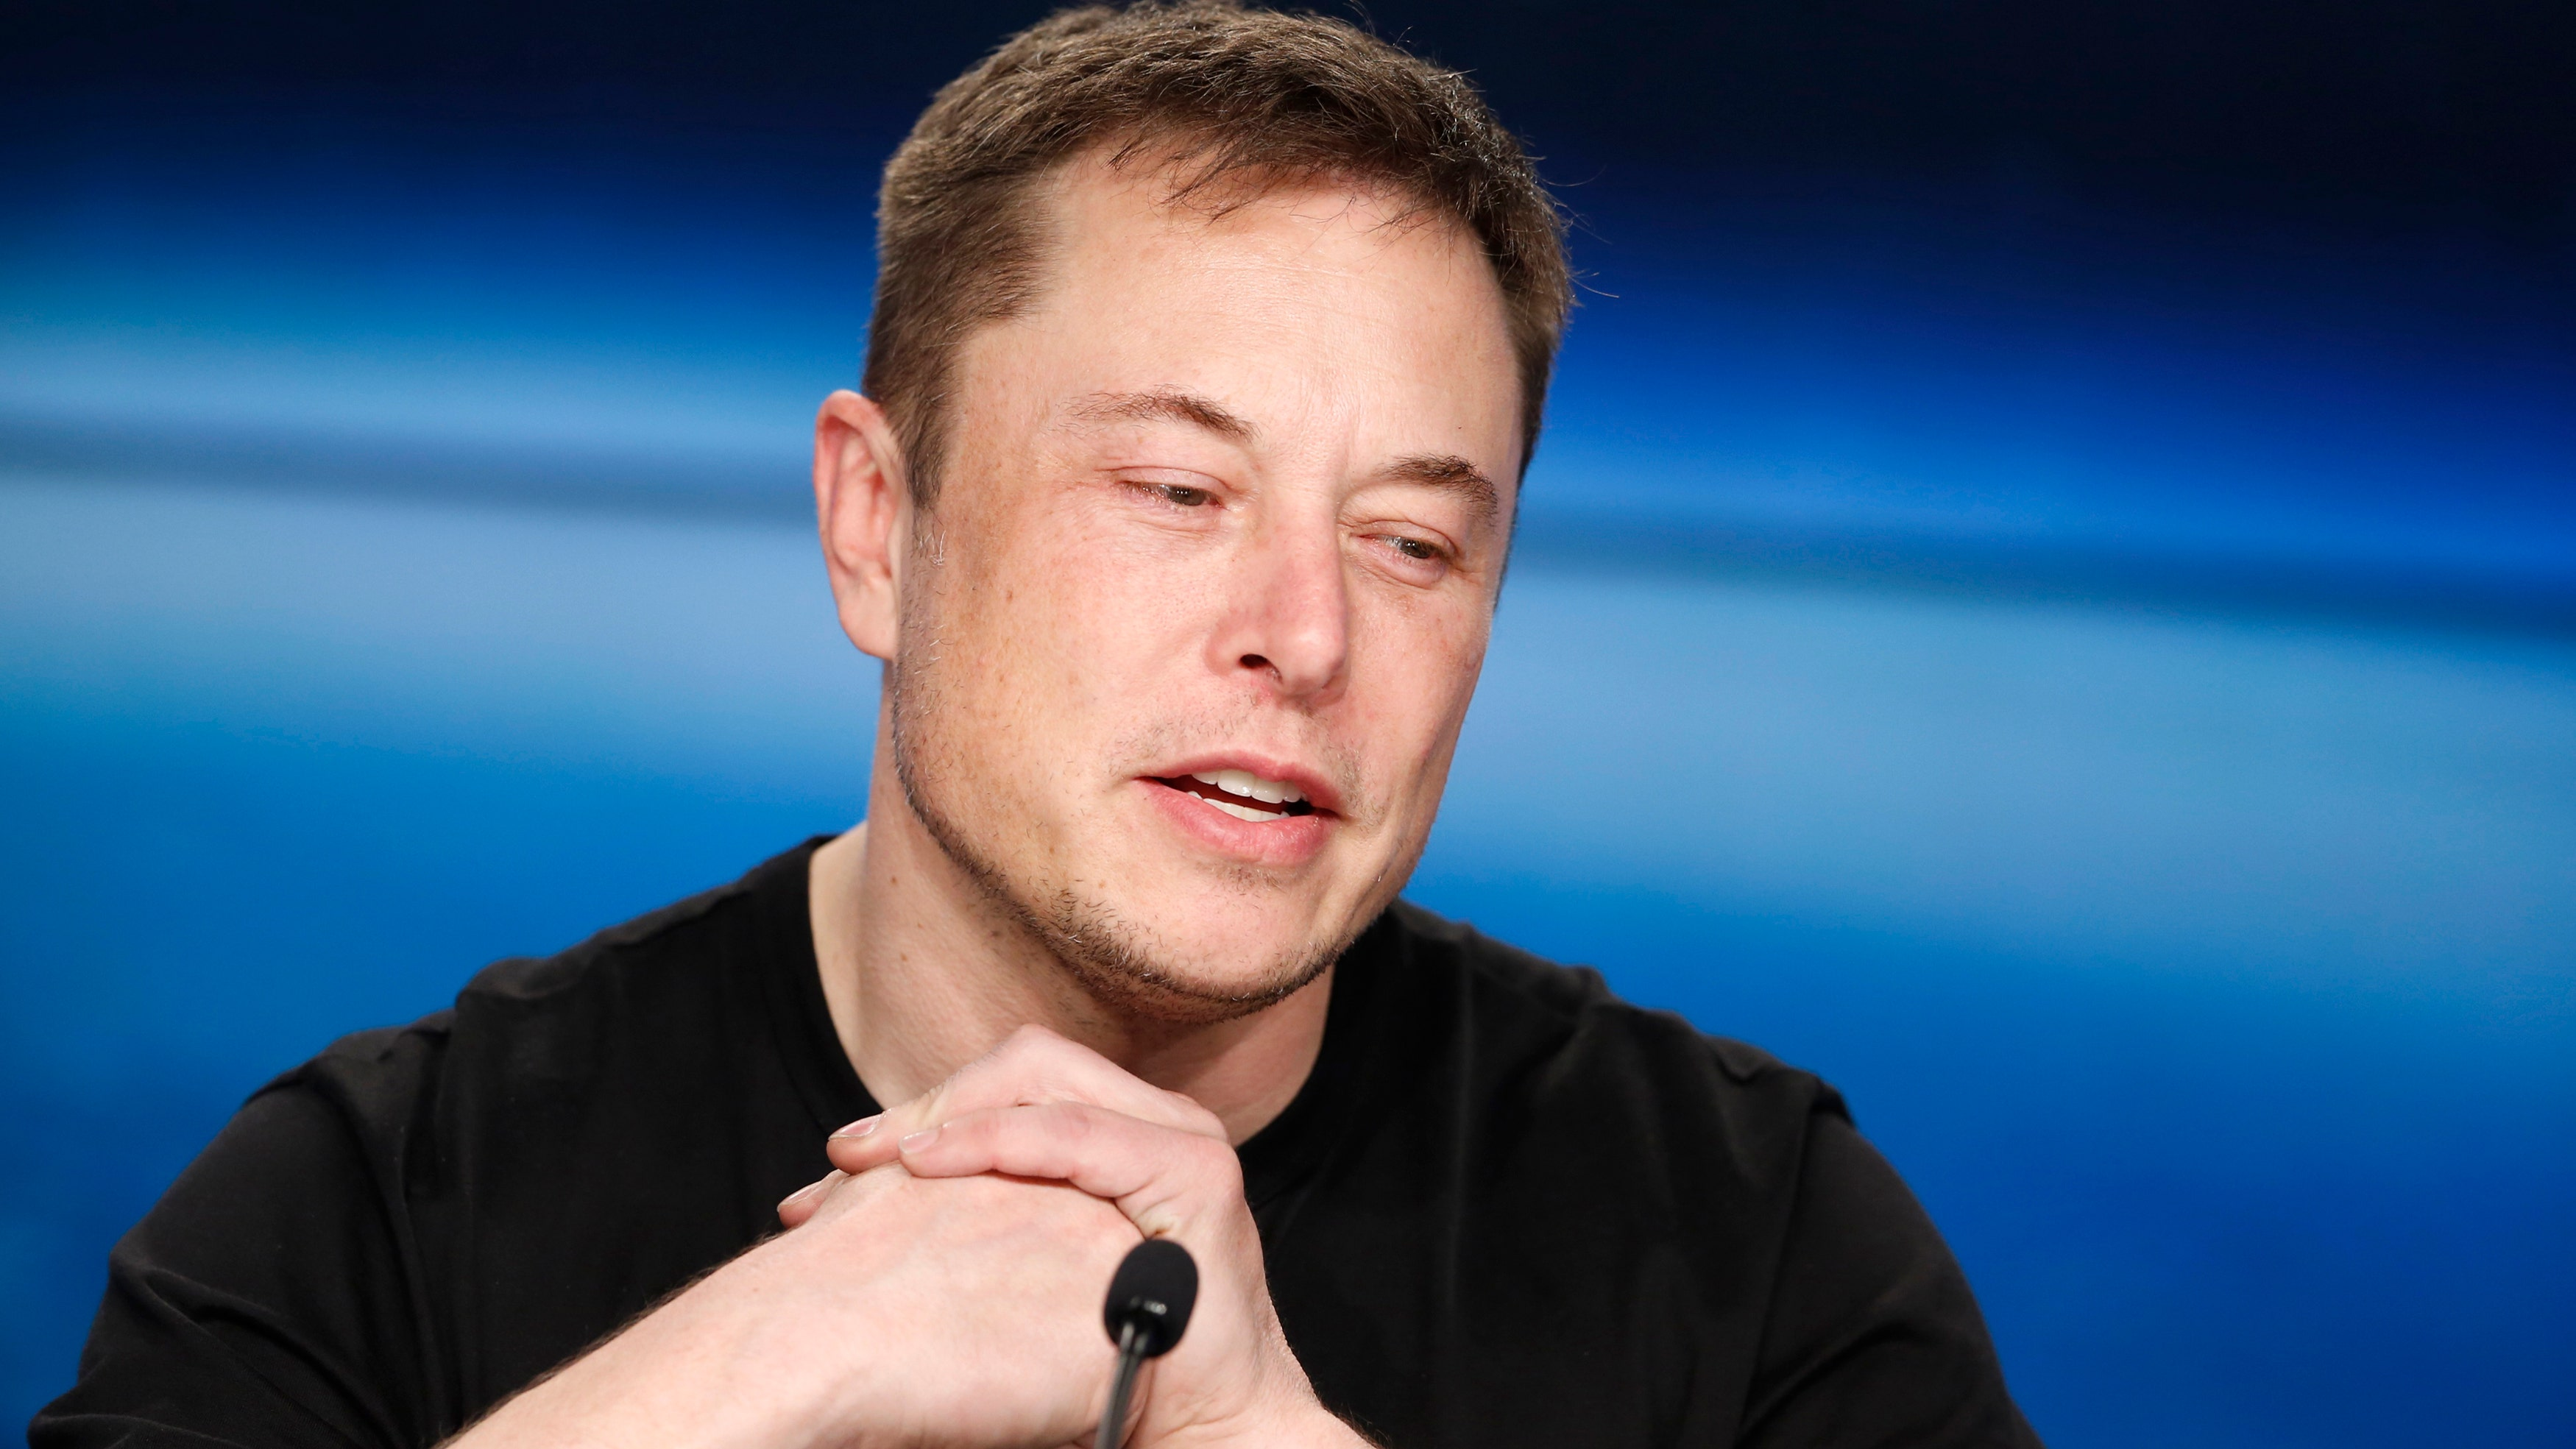 Elon Musk will pay for clean water in Flint